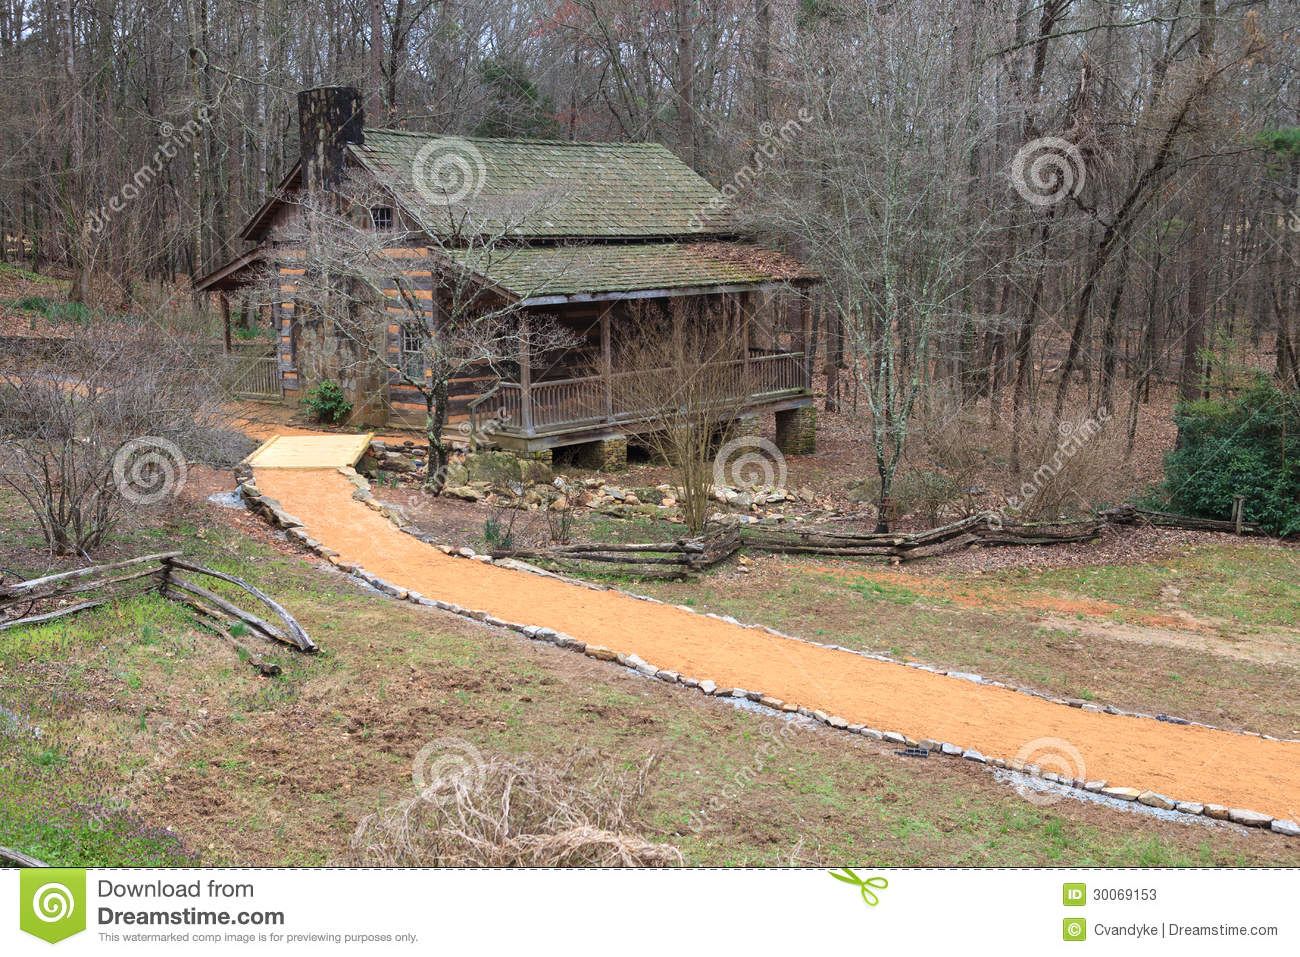 The Hunt Log Cabin, built in 1825, is part of a pioneer village ...